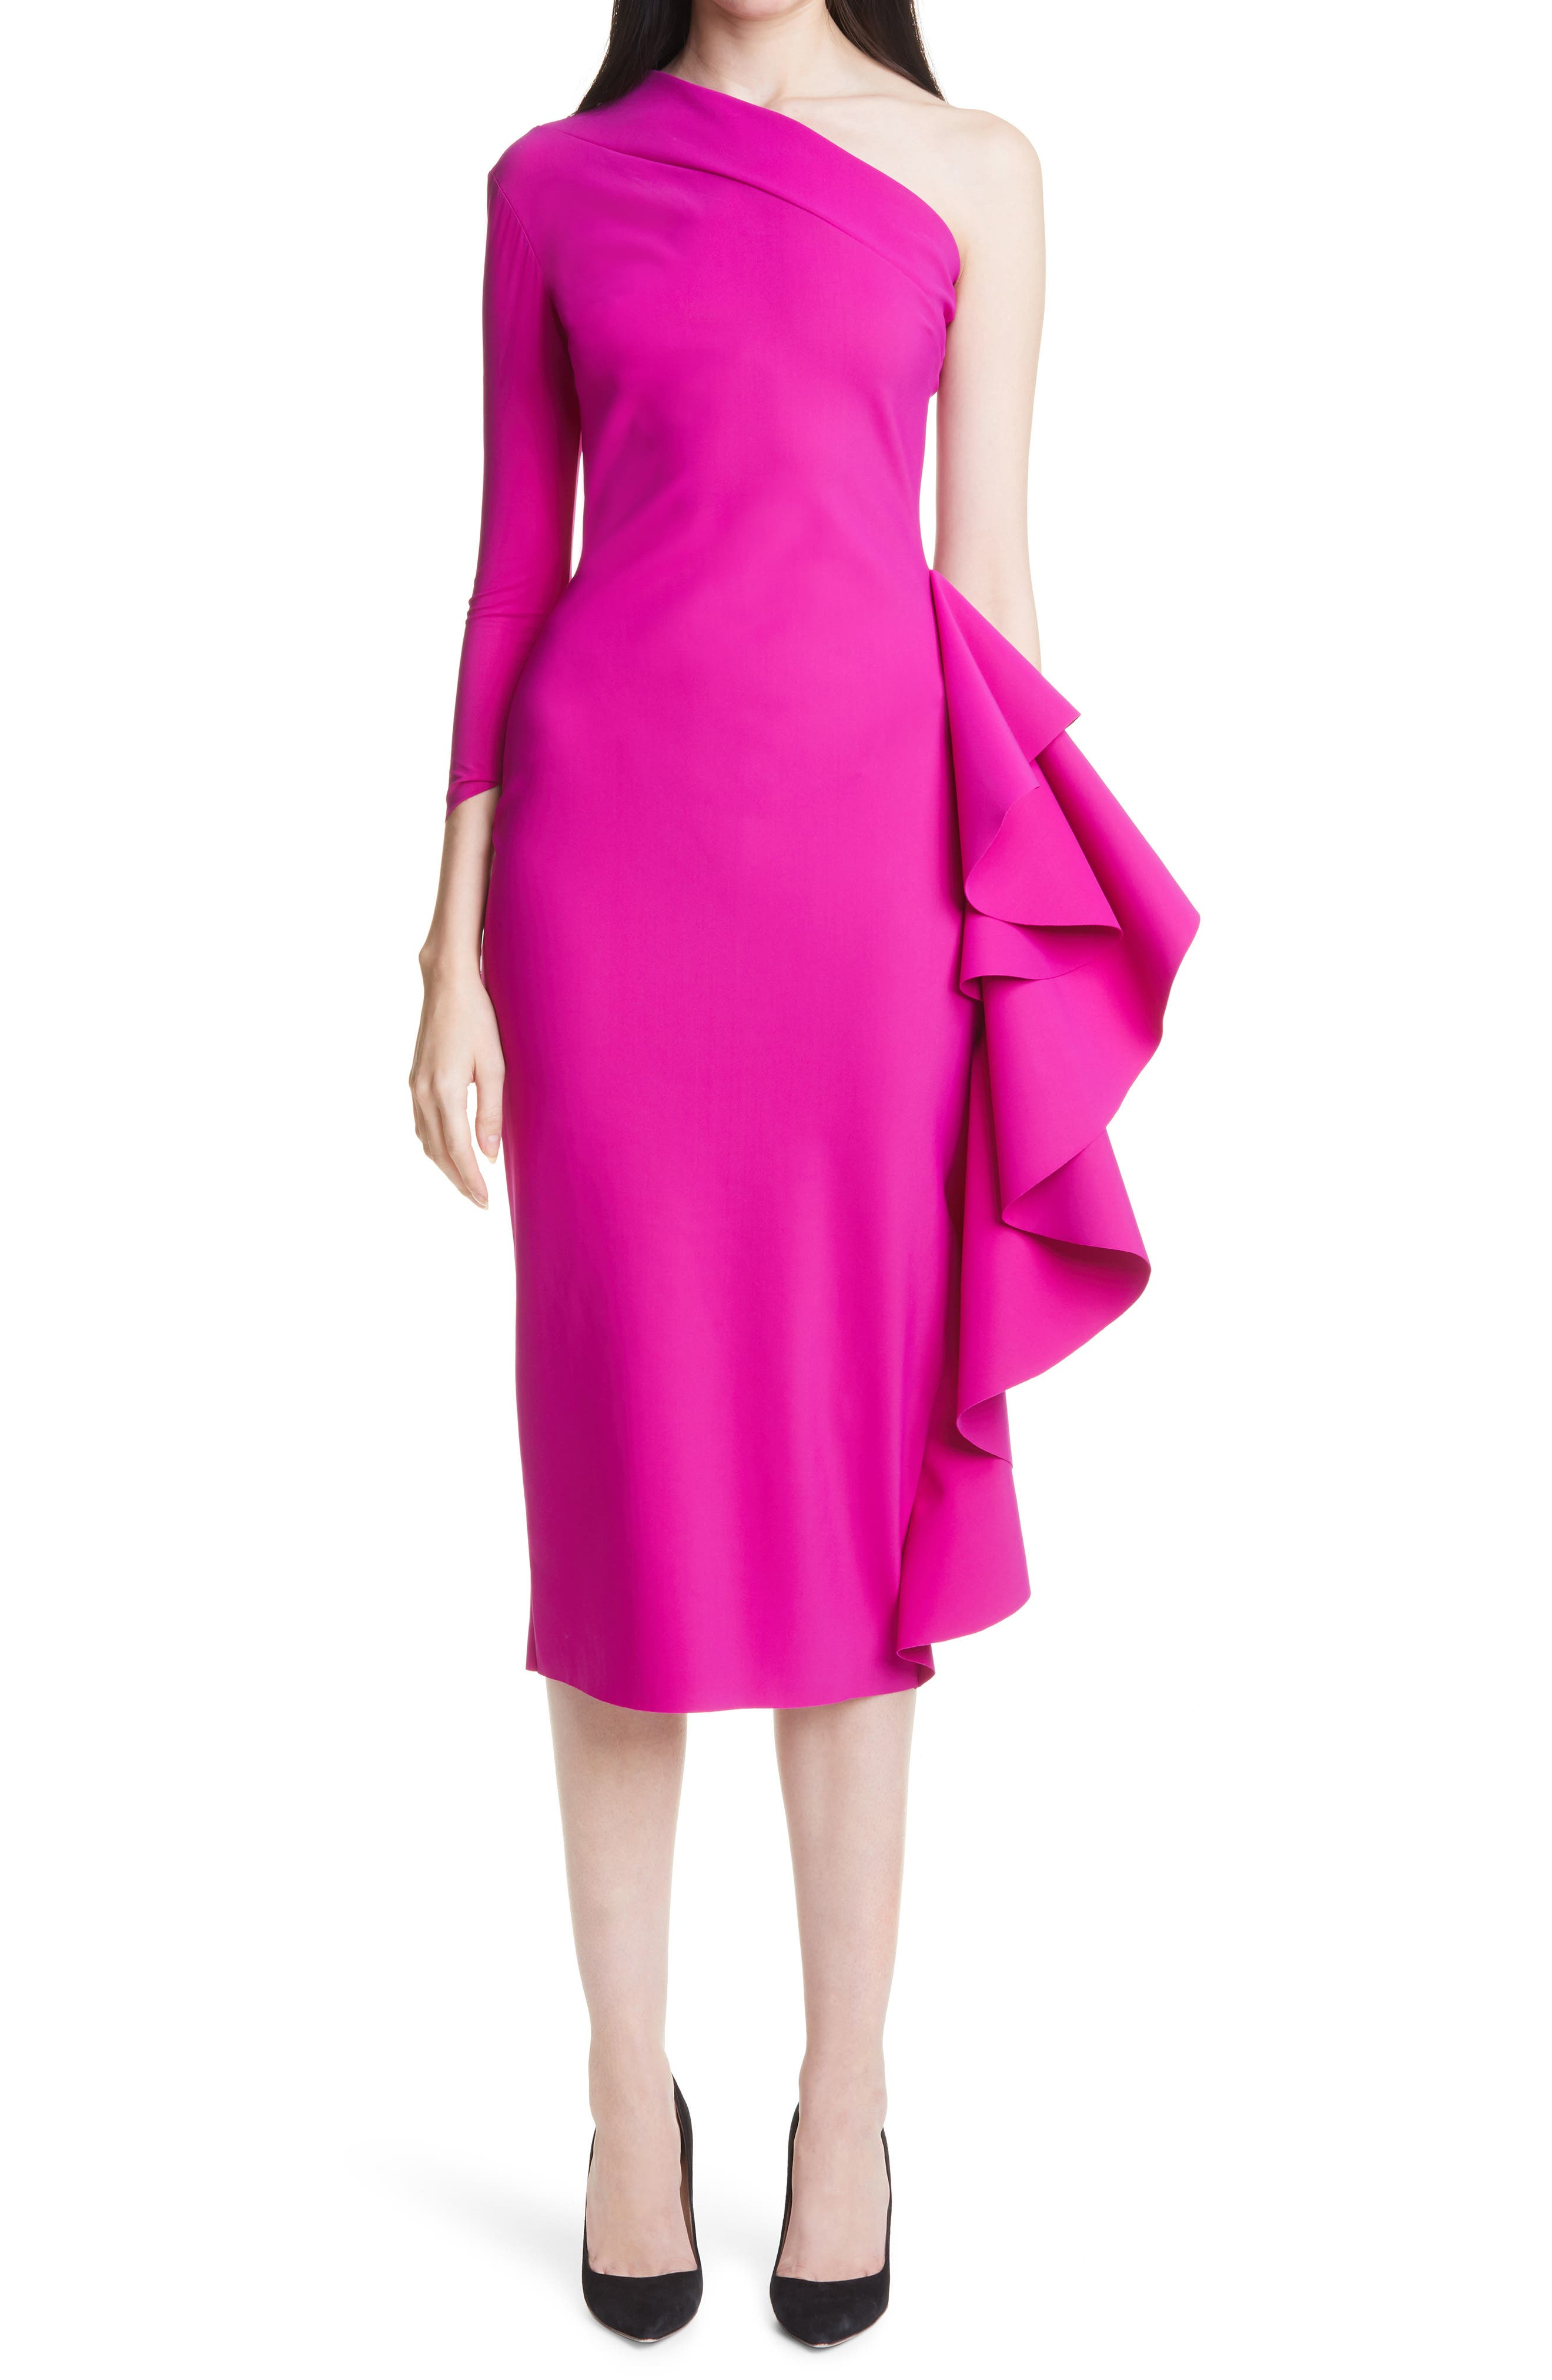 Sia Ruffle One-Shoulder Cocktail Dress